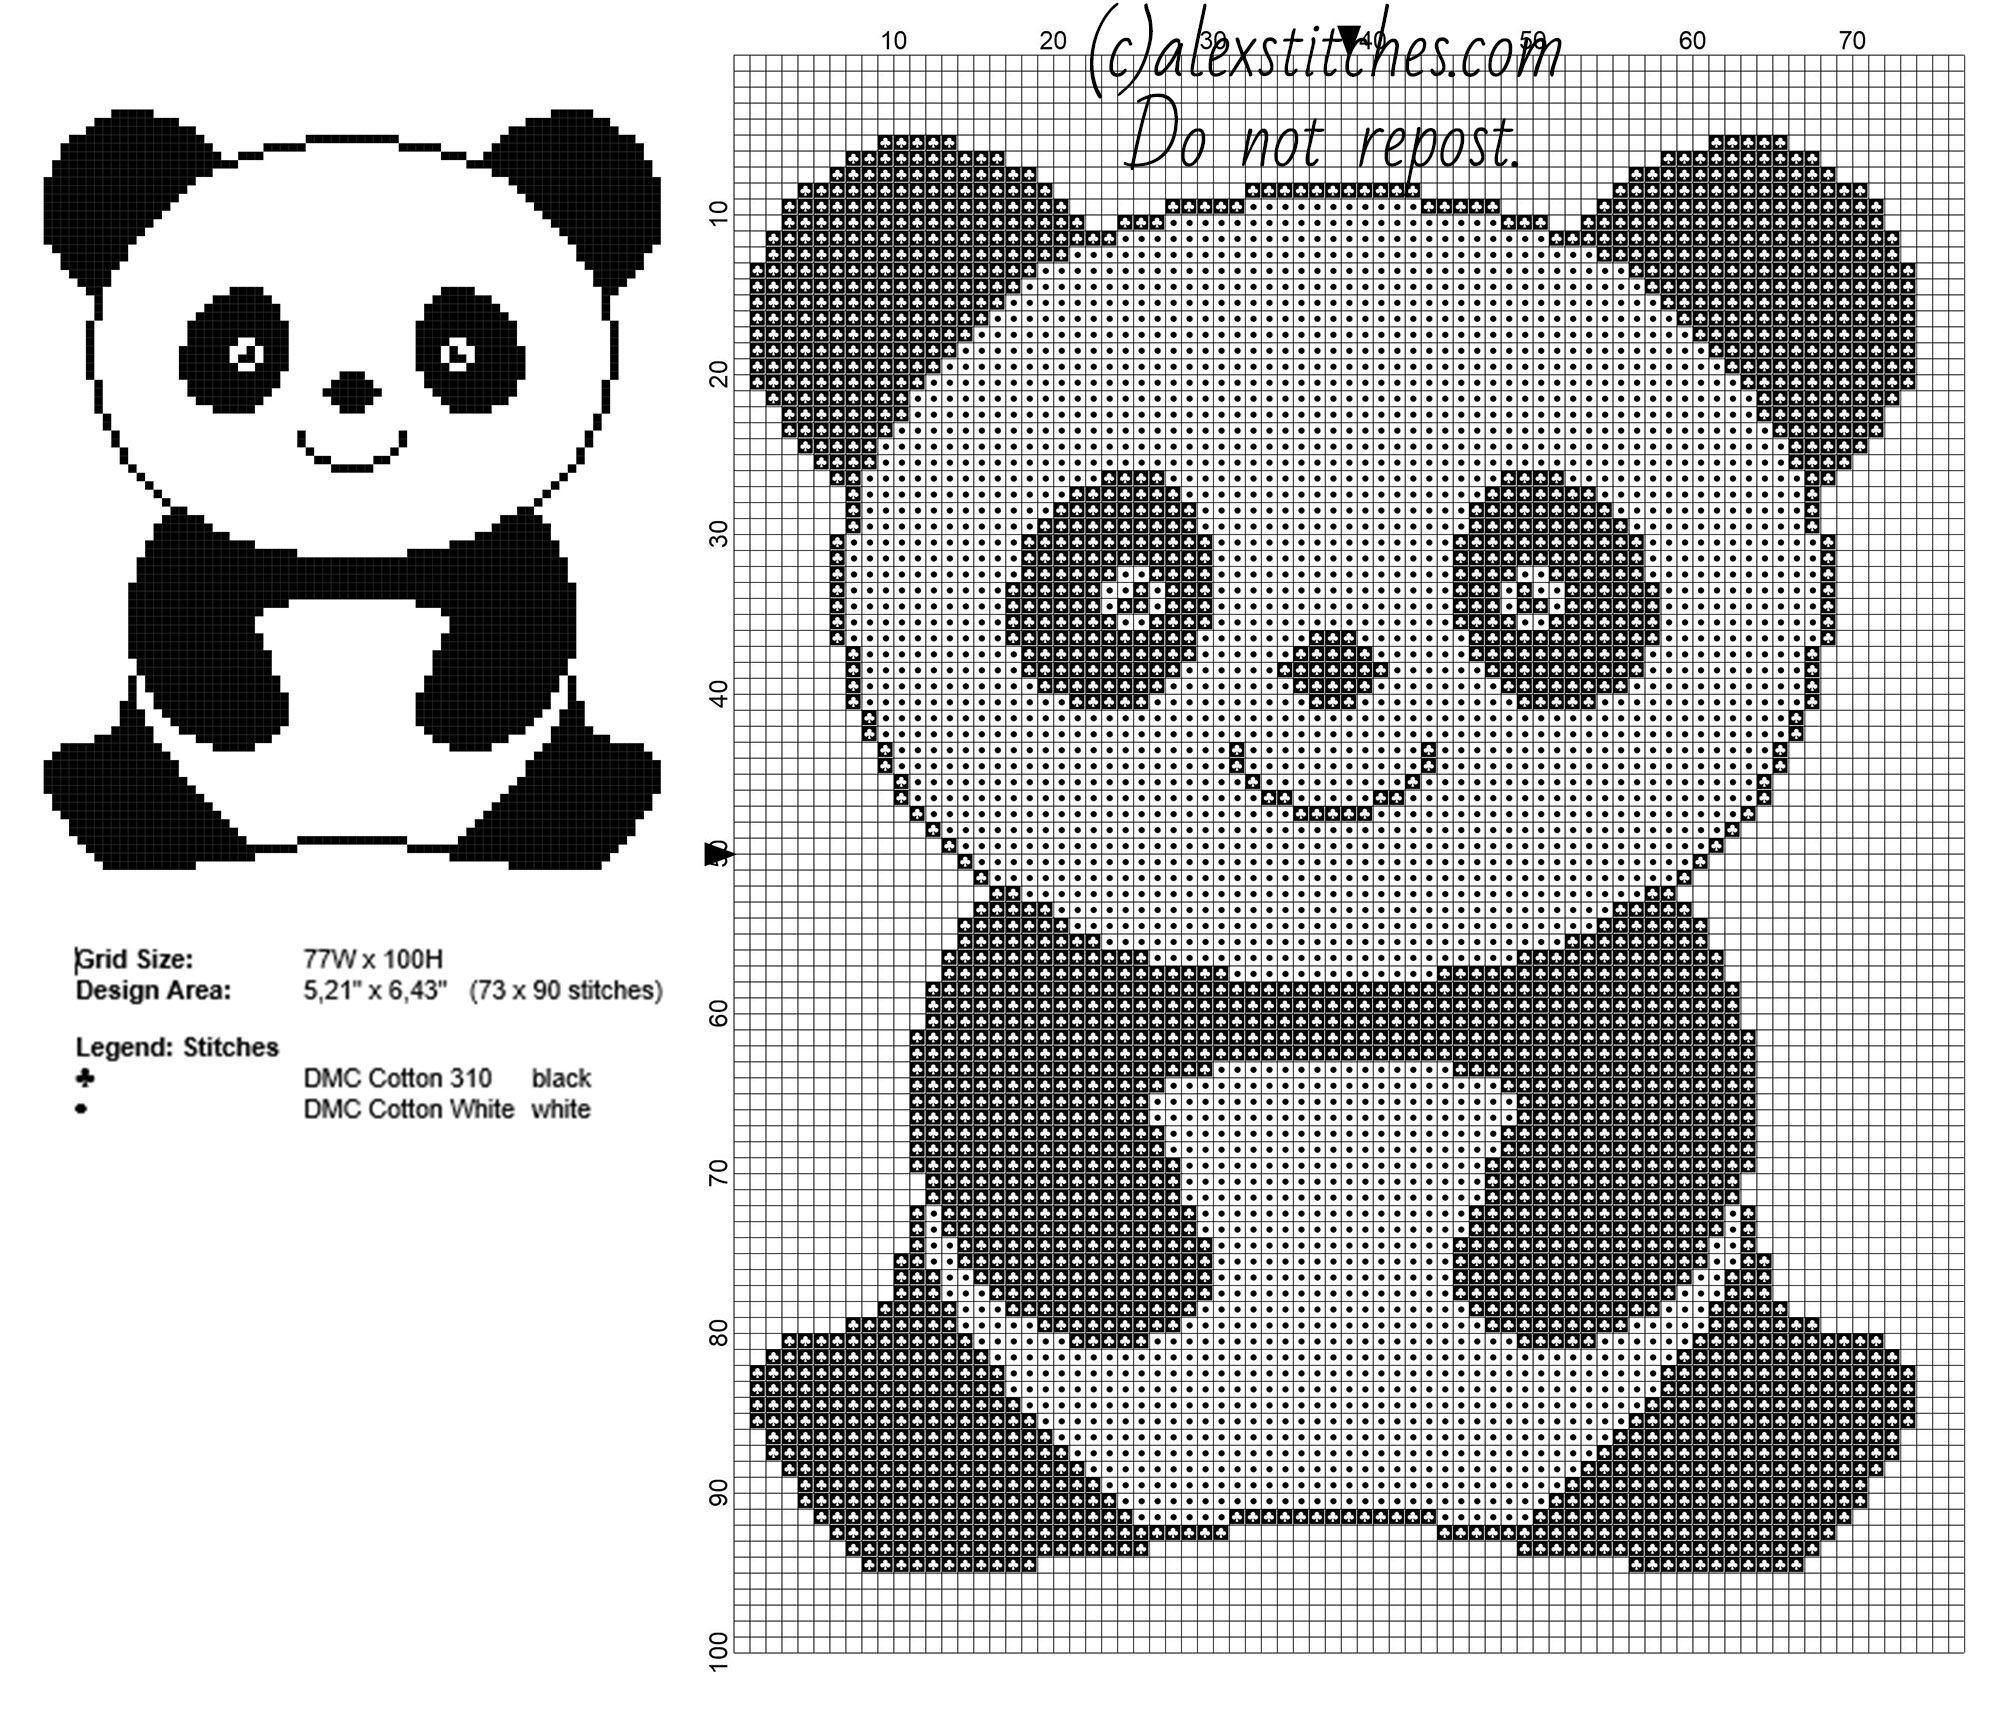 Cross template simple cross image craft ideas pinterest crosses - A Panda Animal For Babies Free Simple Cross Stitch Pattern 73 X 90 Stitches 2 Dmc